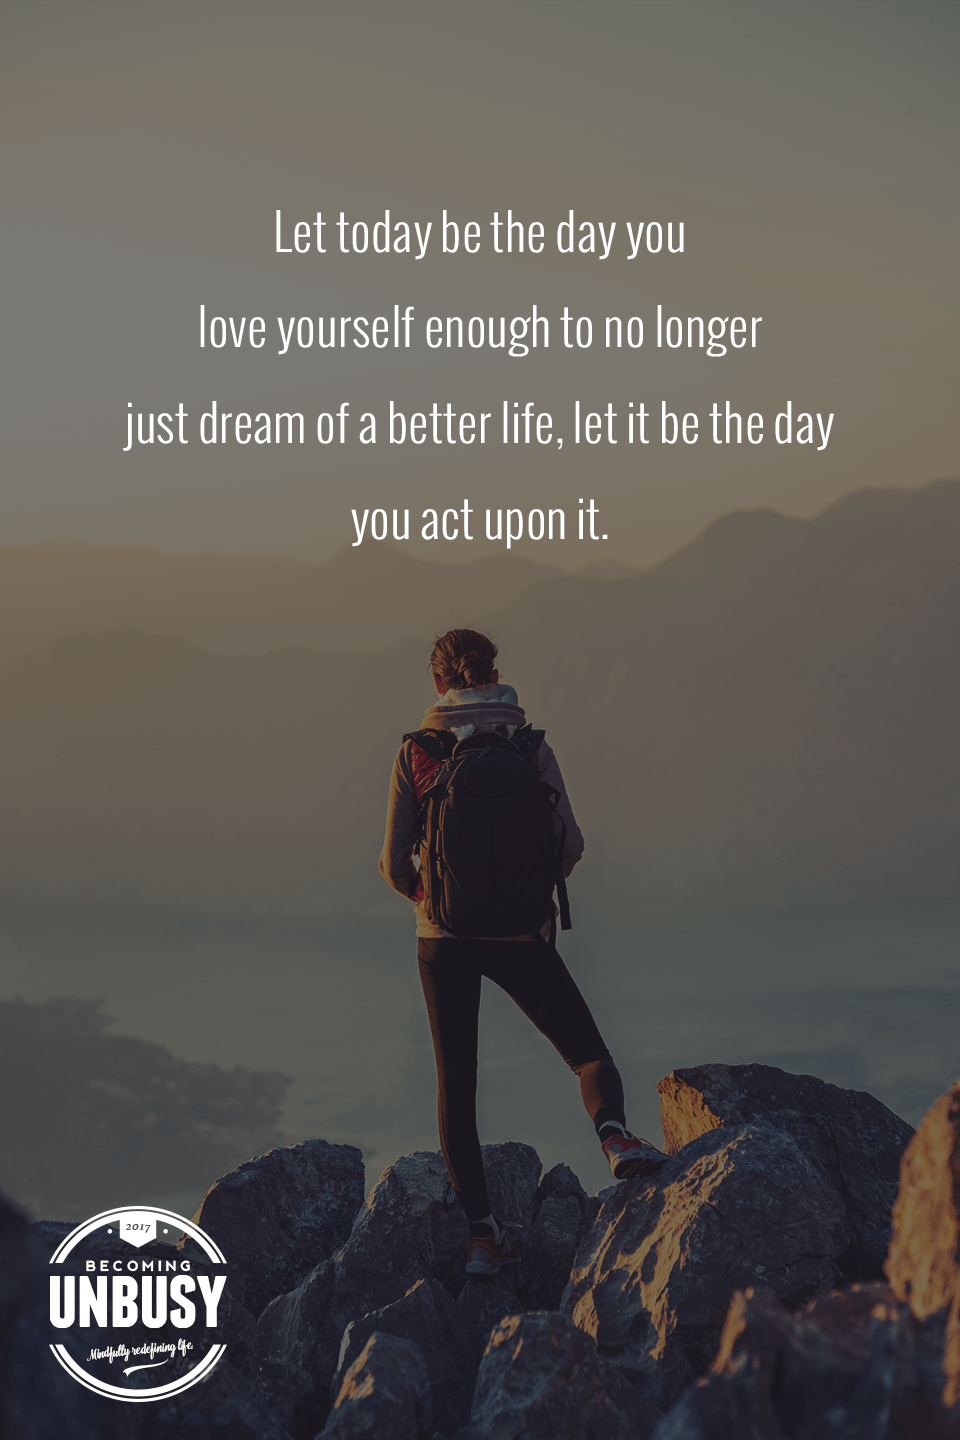 Let today be the day you love yourself enough to no longer just